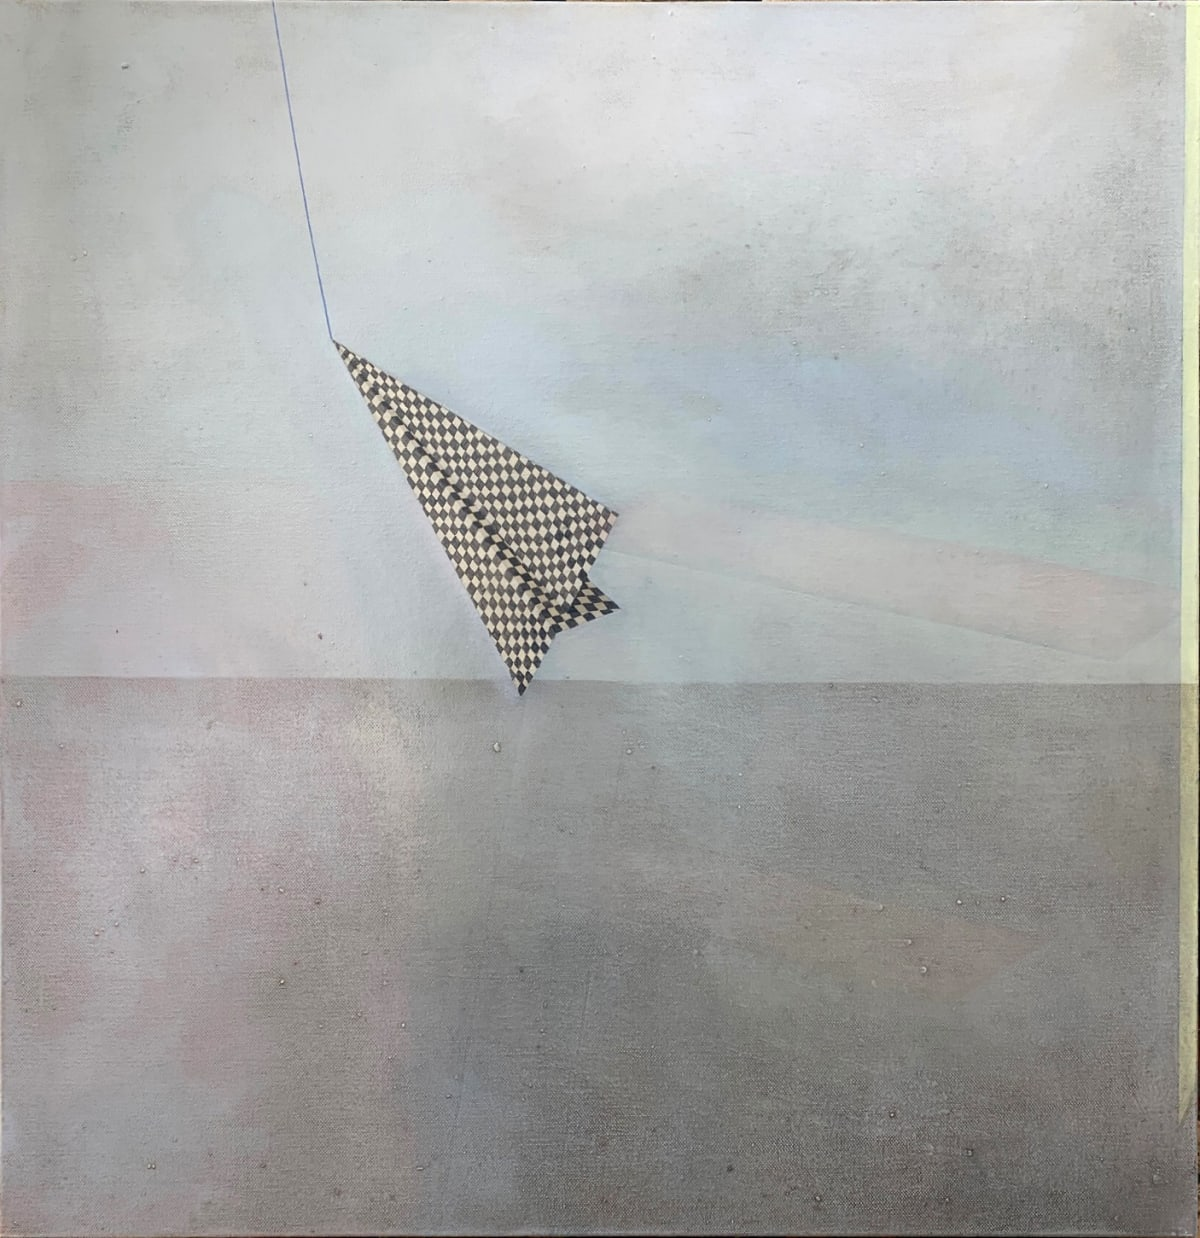 Gillian Lawler, Suspension